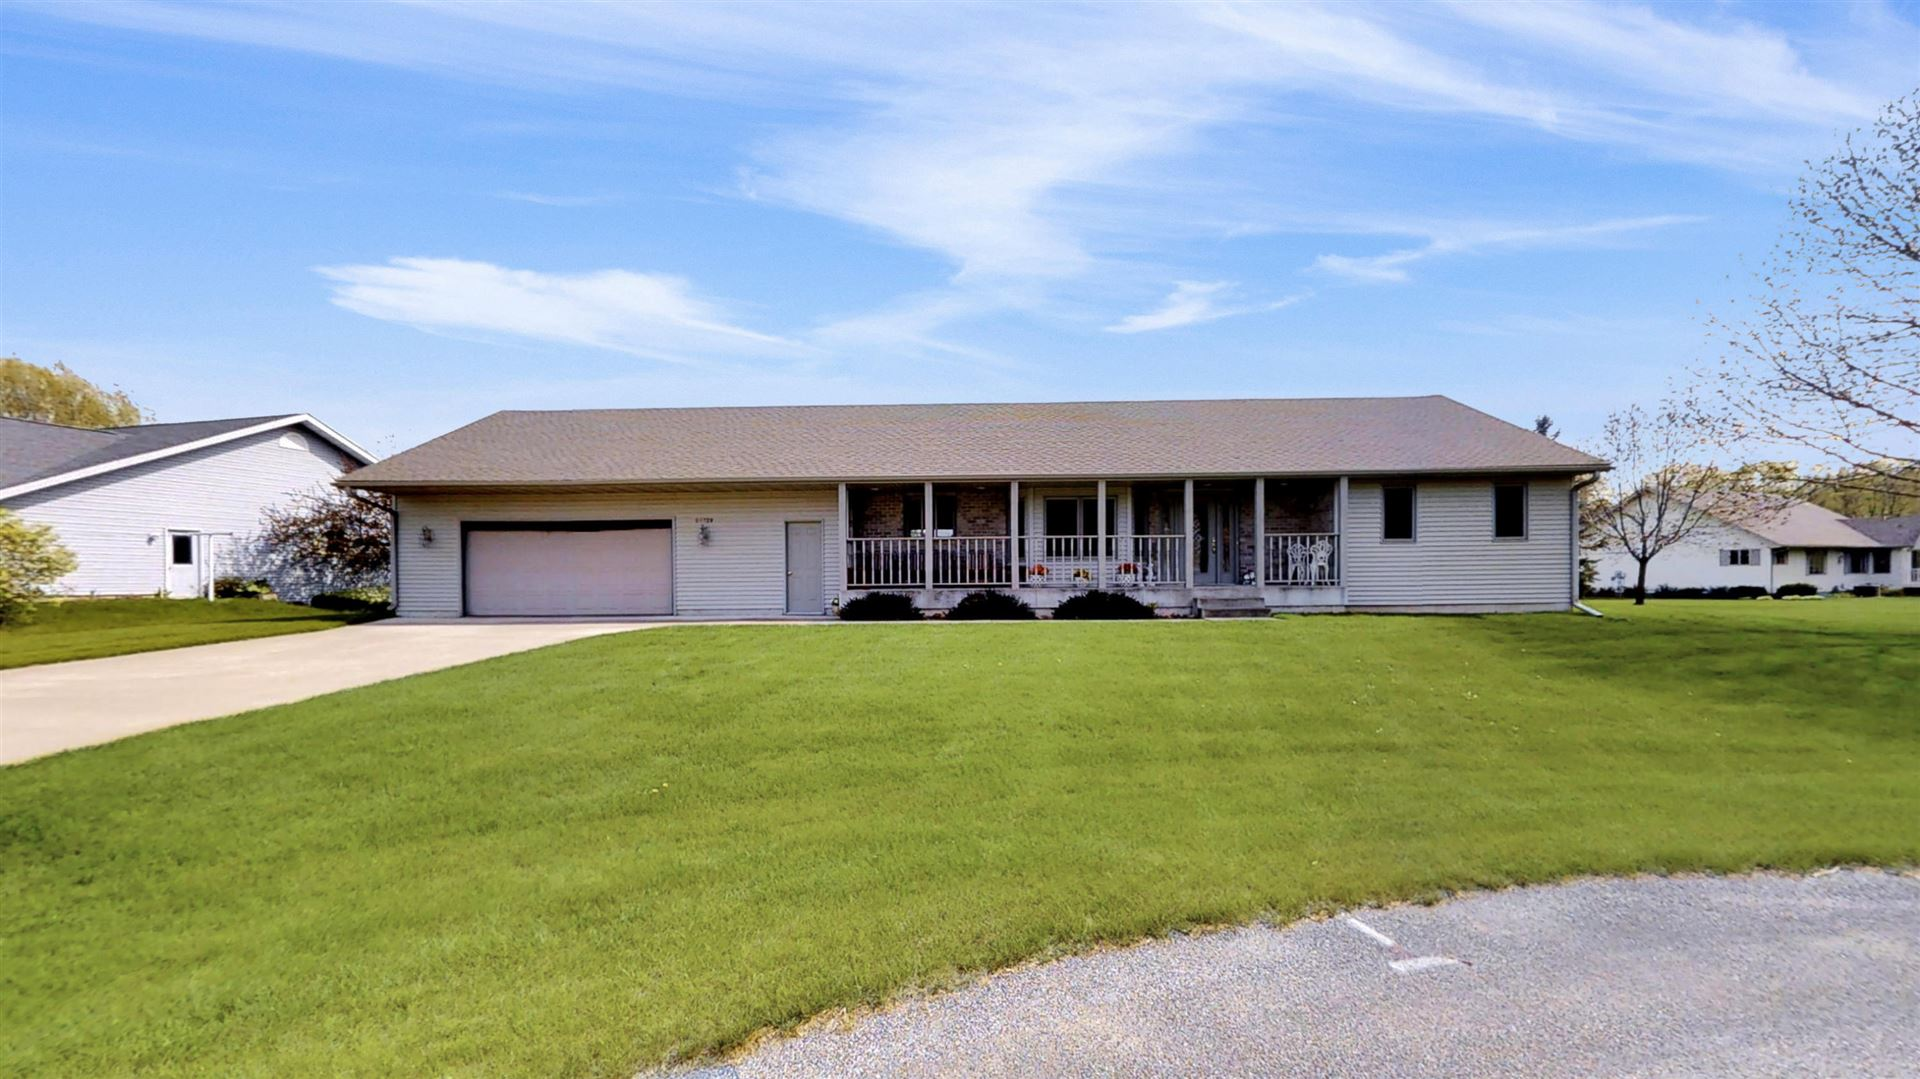 24329 Cardinal Ct, Trempealeau, WI 54661 - MLS#: 1680421